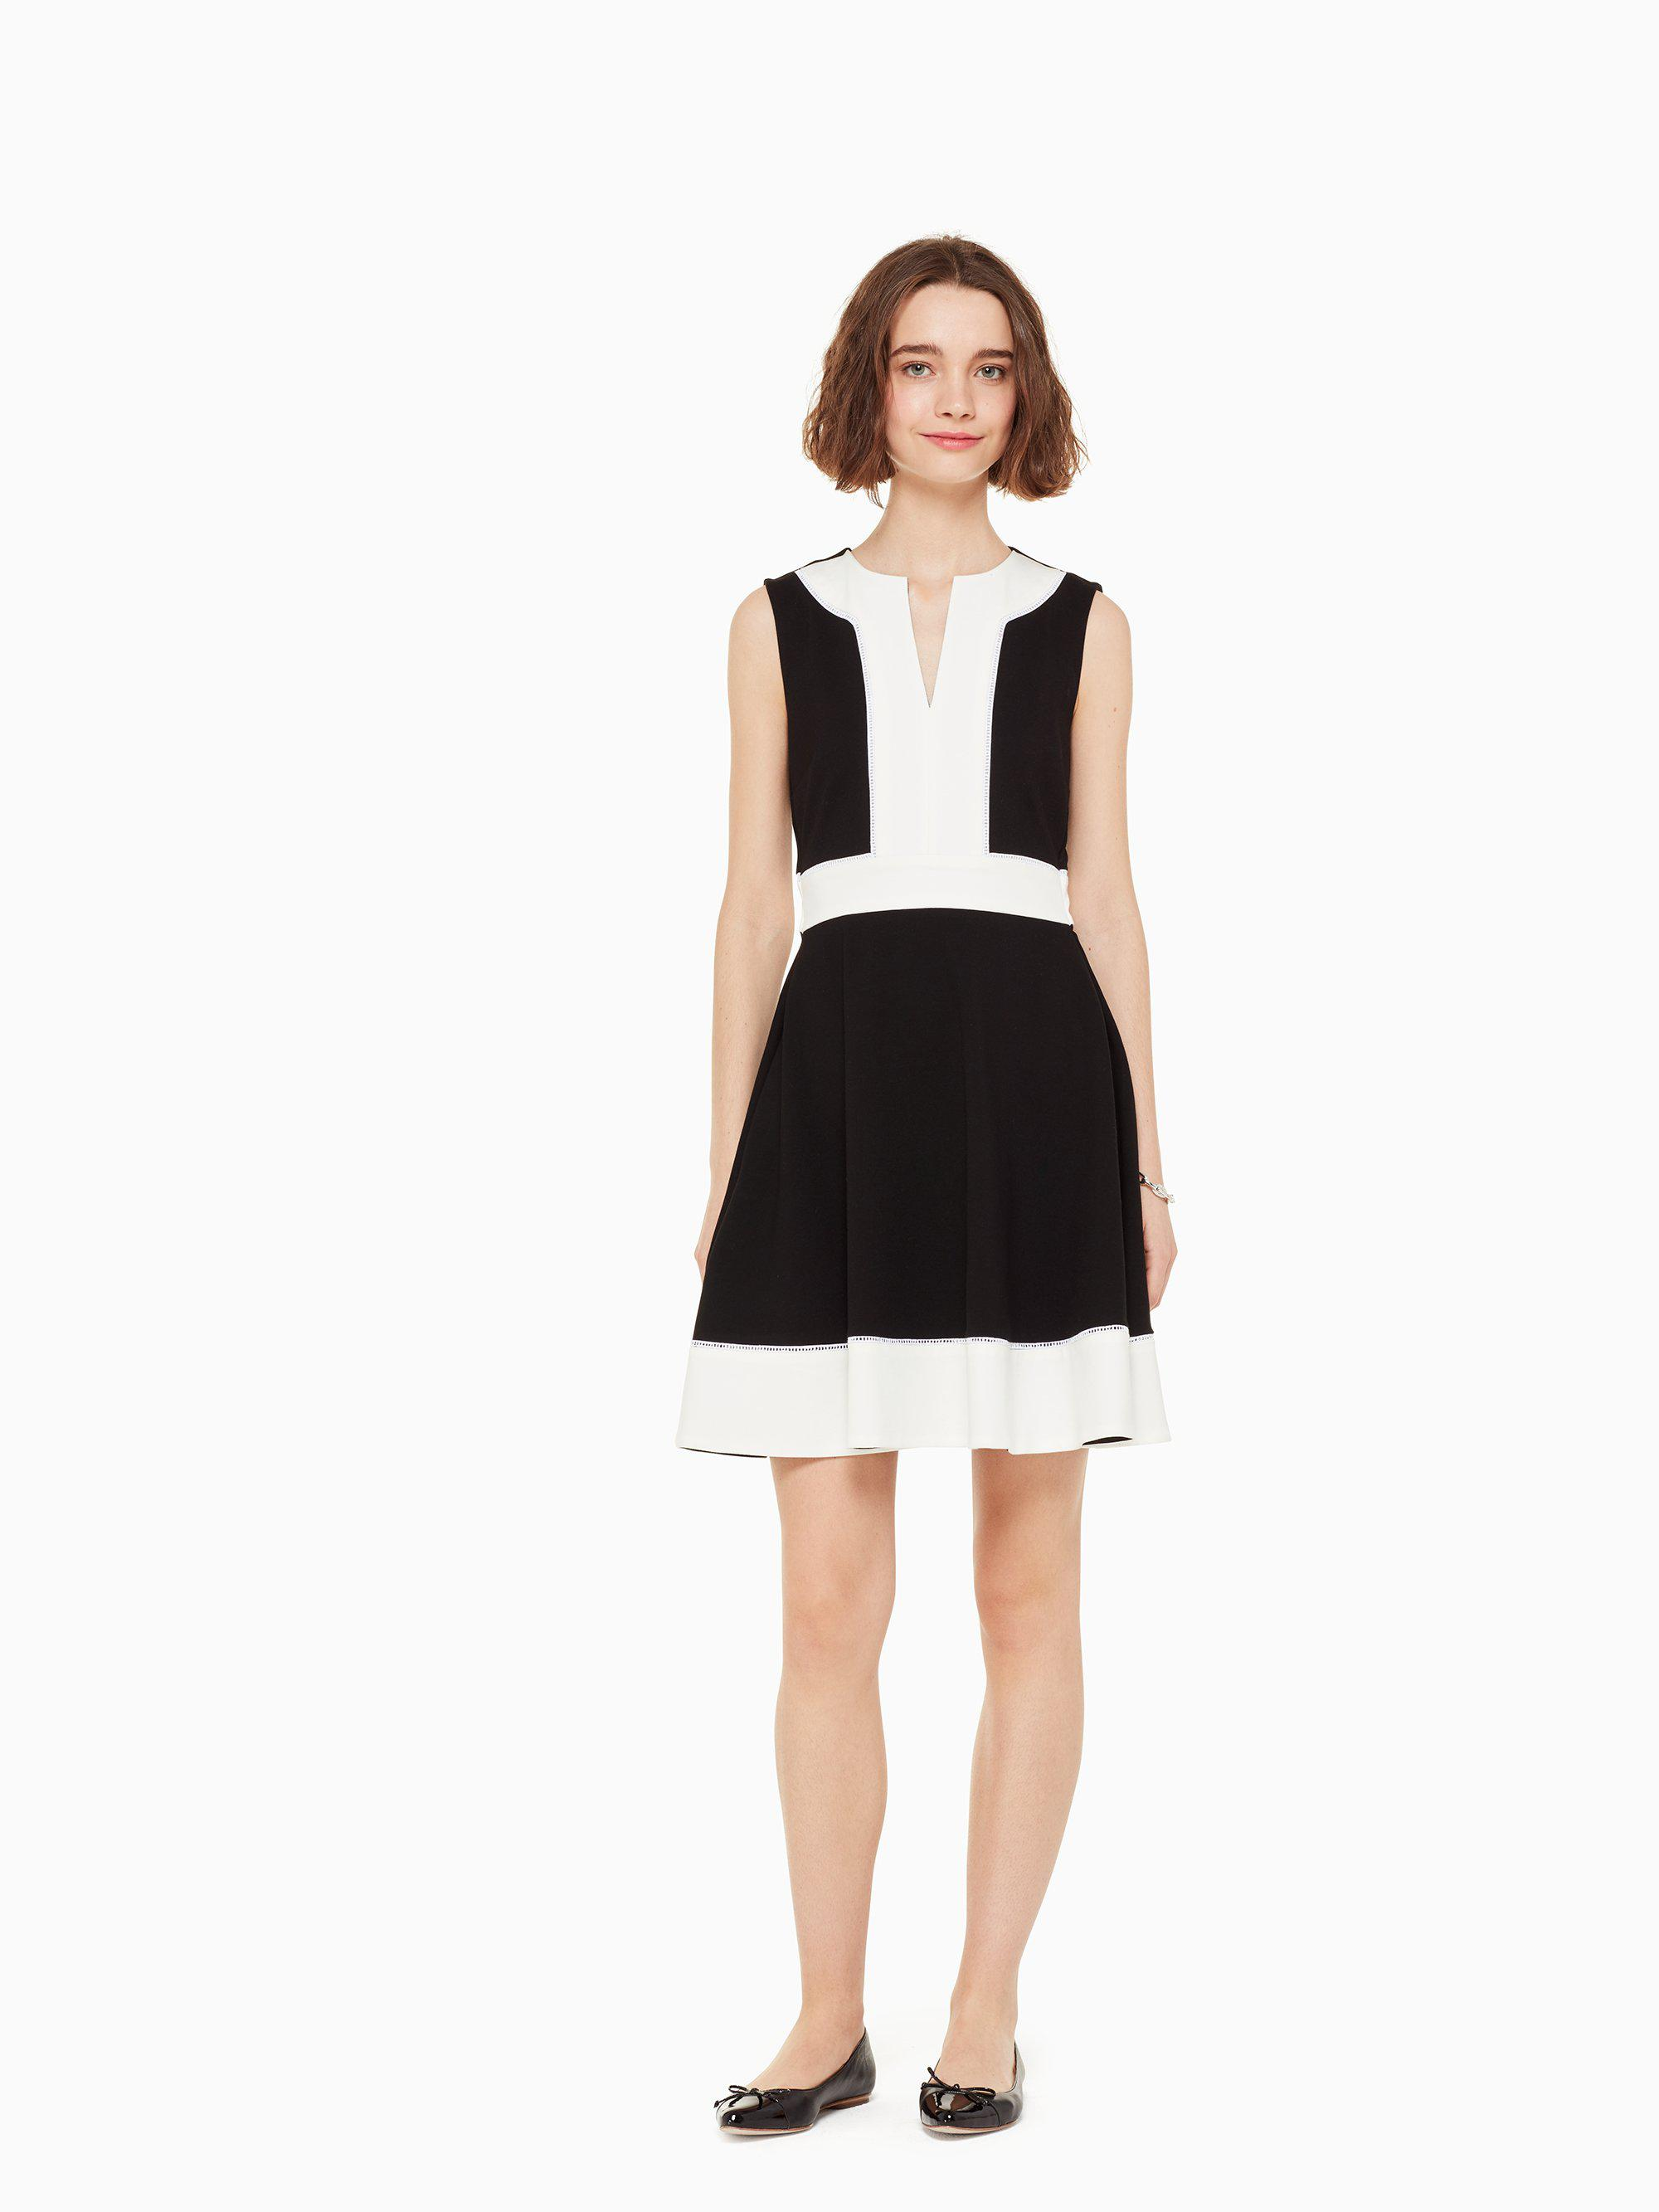 3495b0602c Lyst - Kate Spade Color Block Ponte Dress in Black - Save 58%